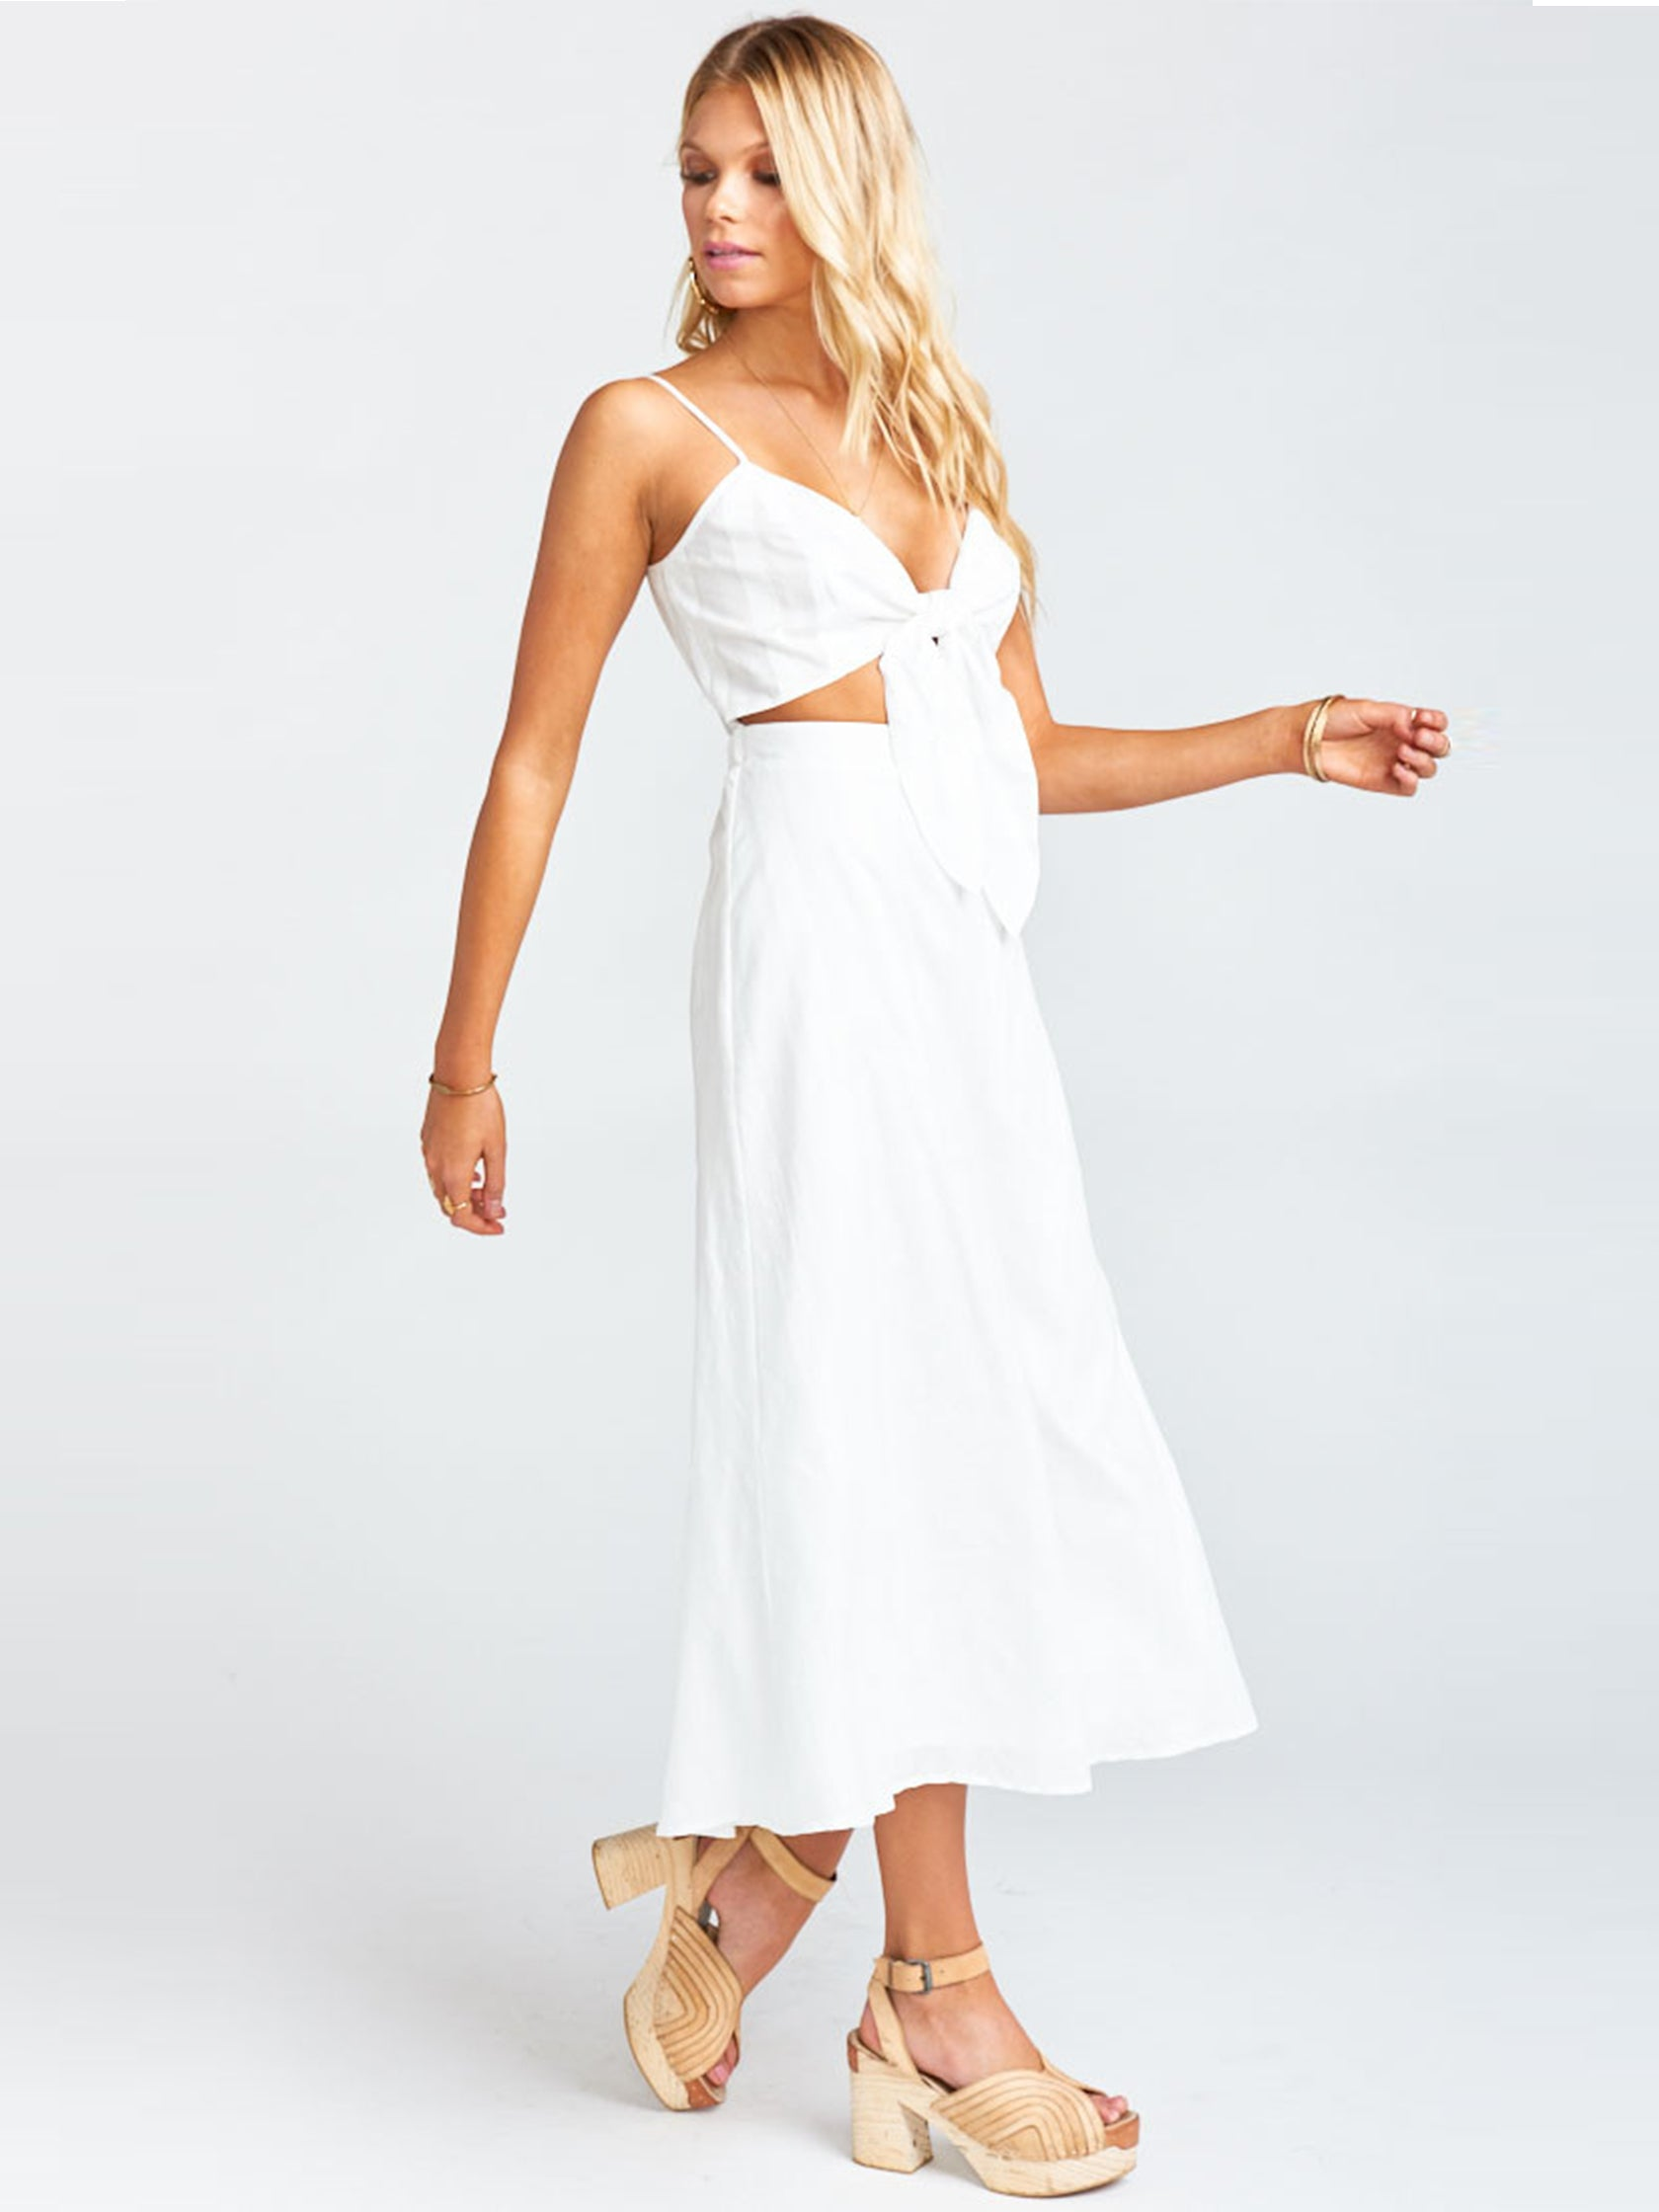 Women wearing a dress rental from Show Me Your Mumu called Moby Tie Maxi - White Tulip